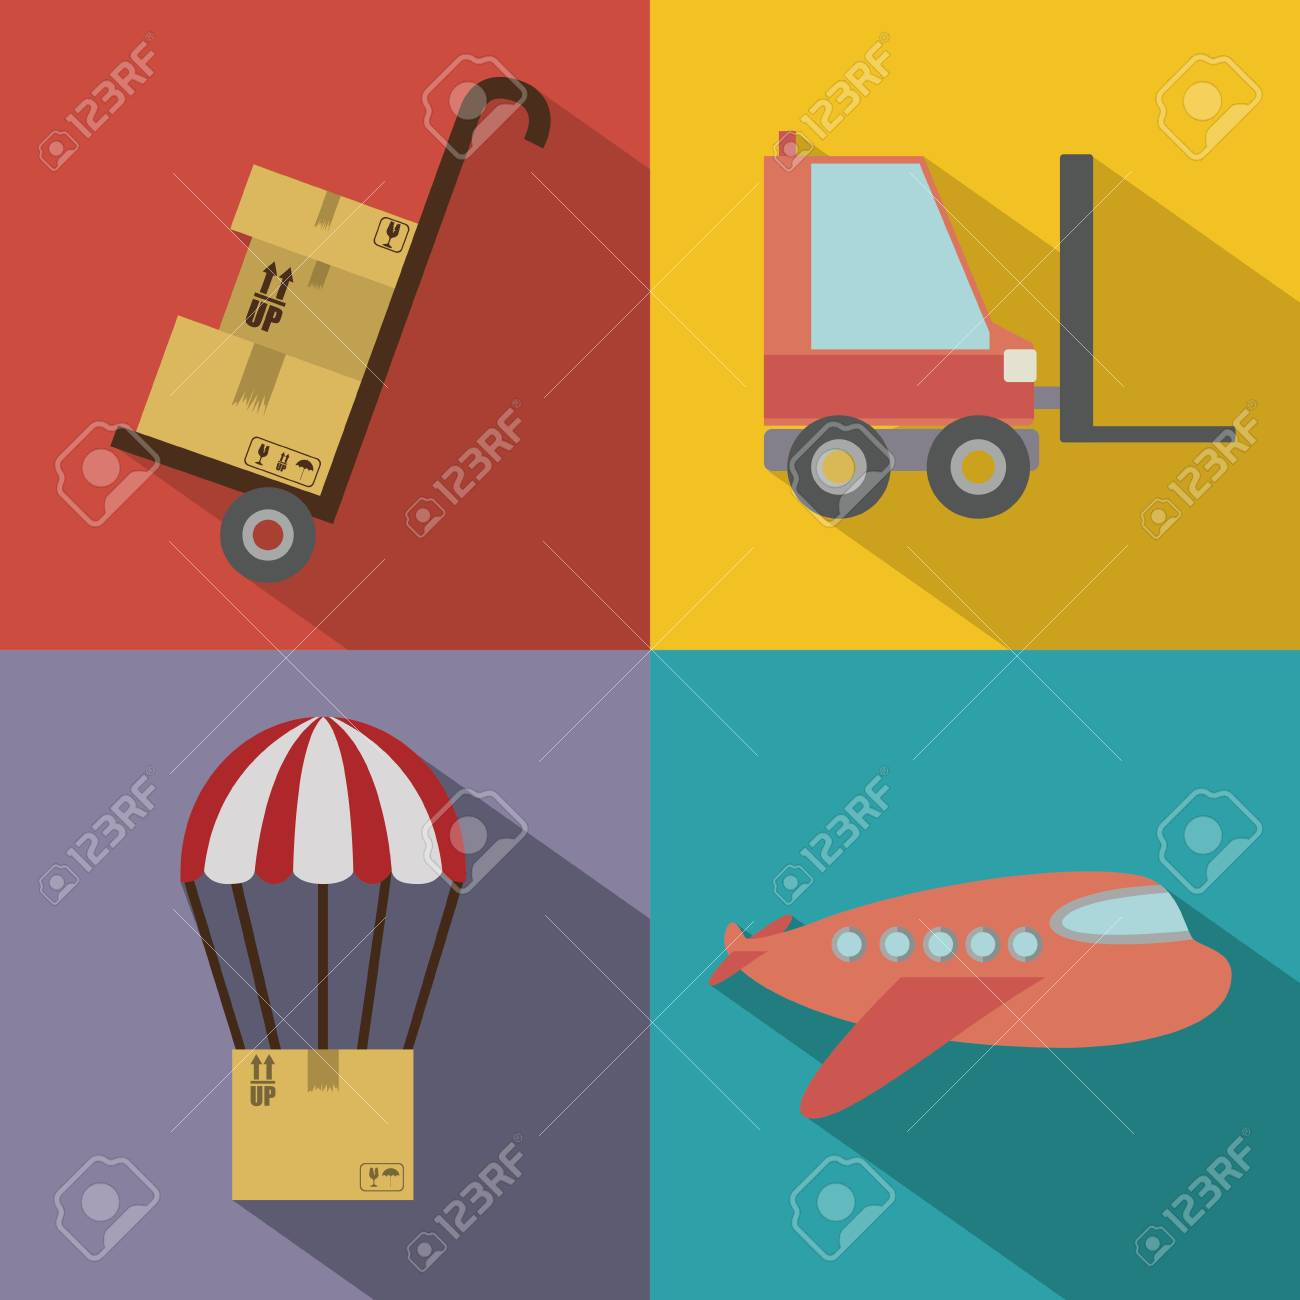 Delivery design over colorful background,vector illustration Stock Vector - 28487667